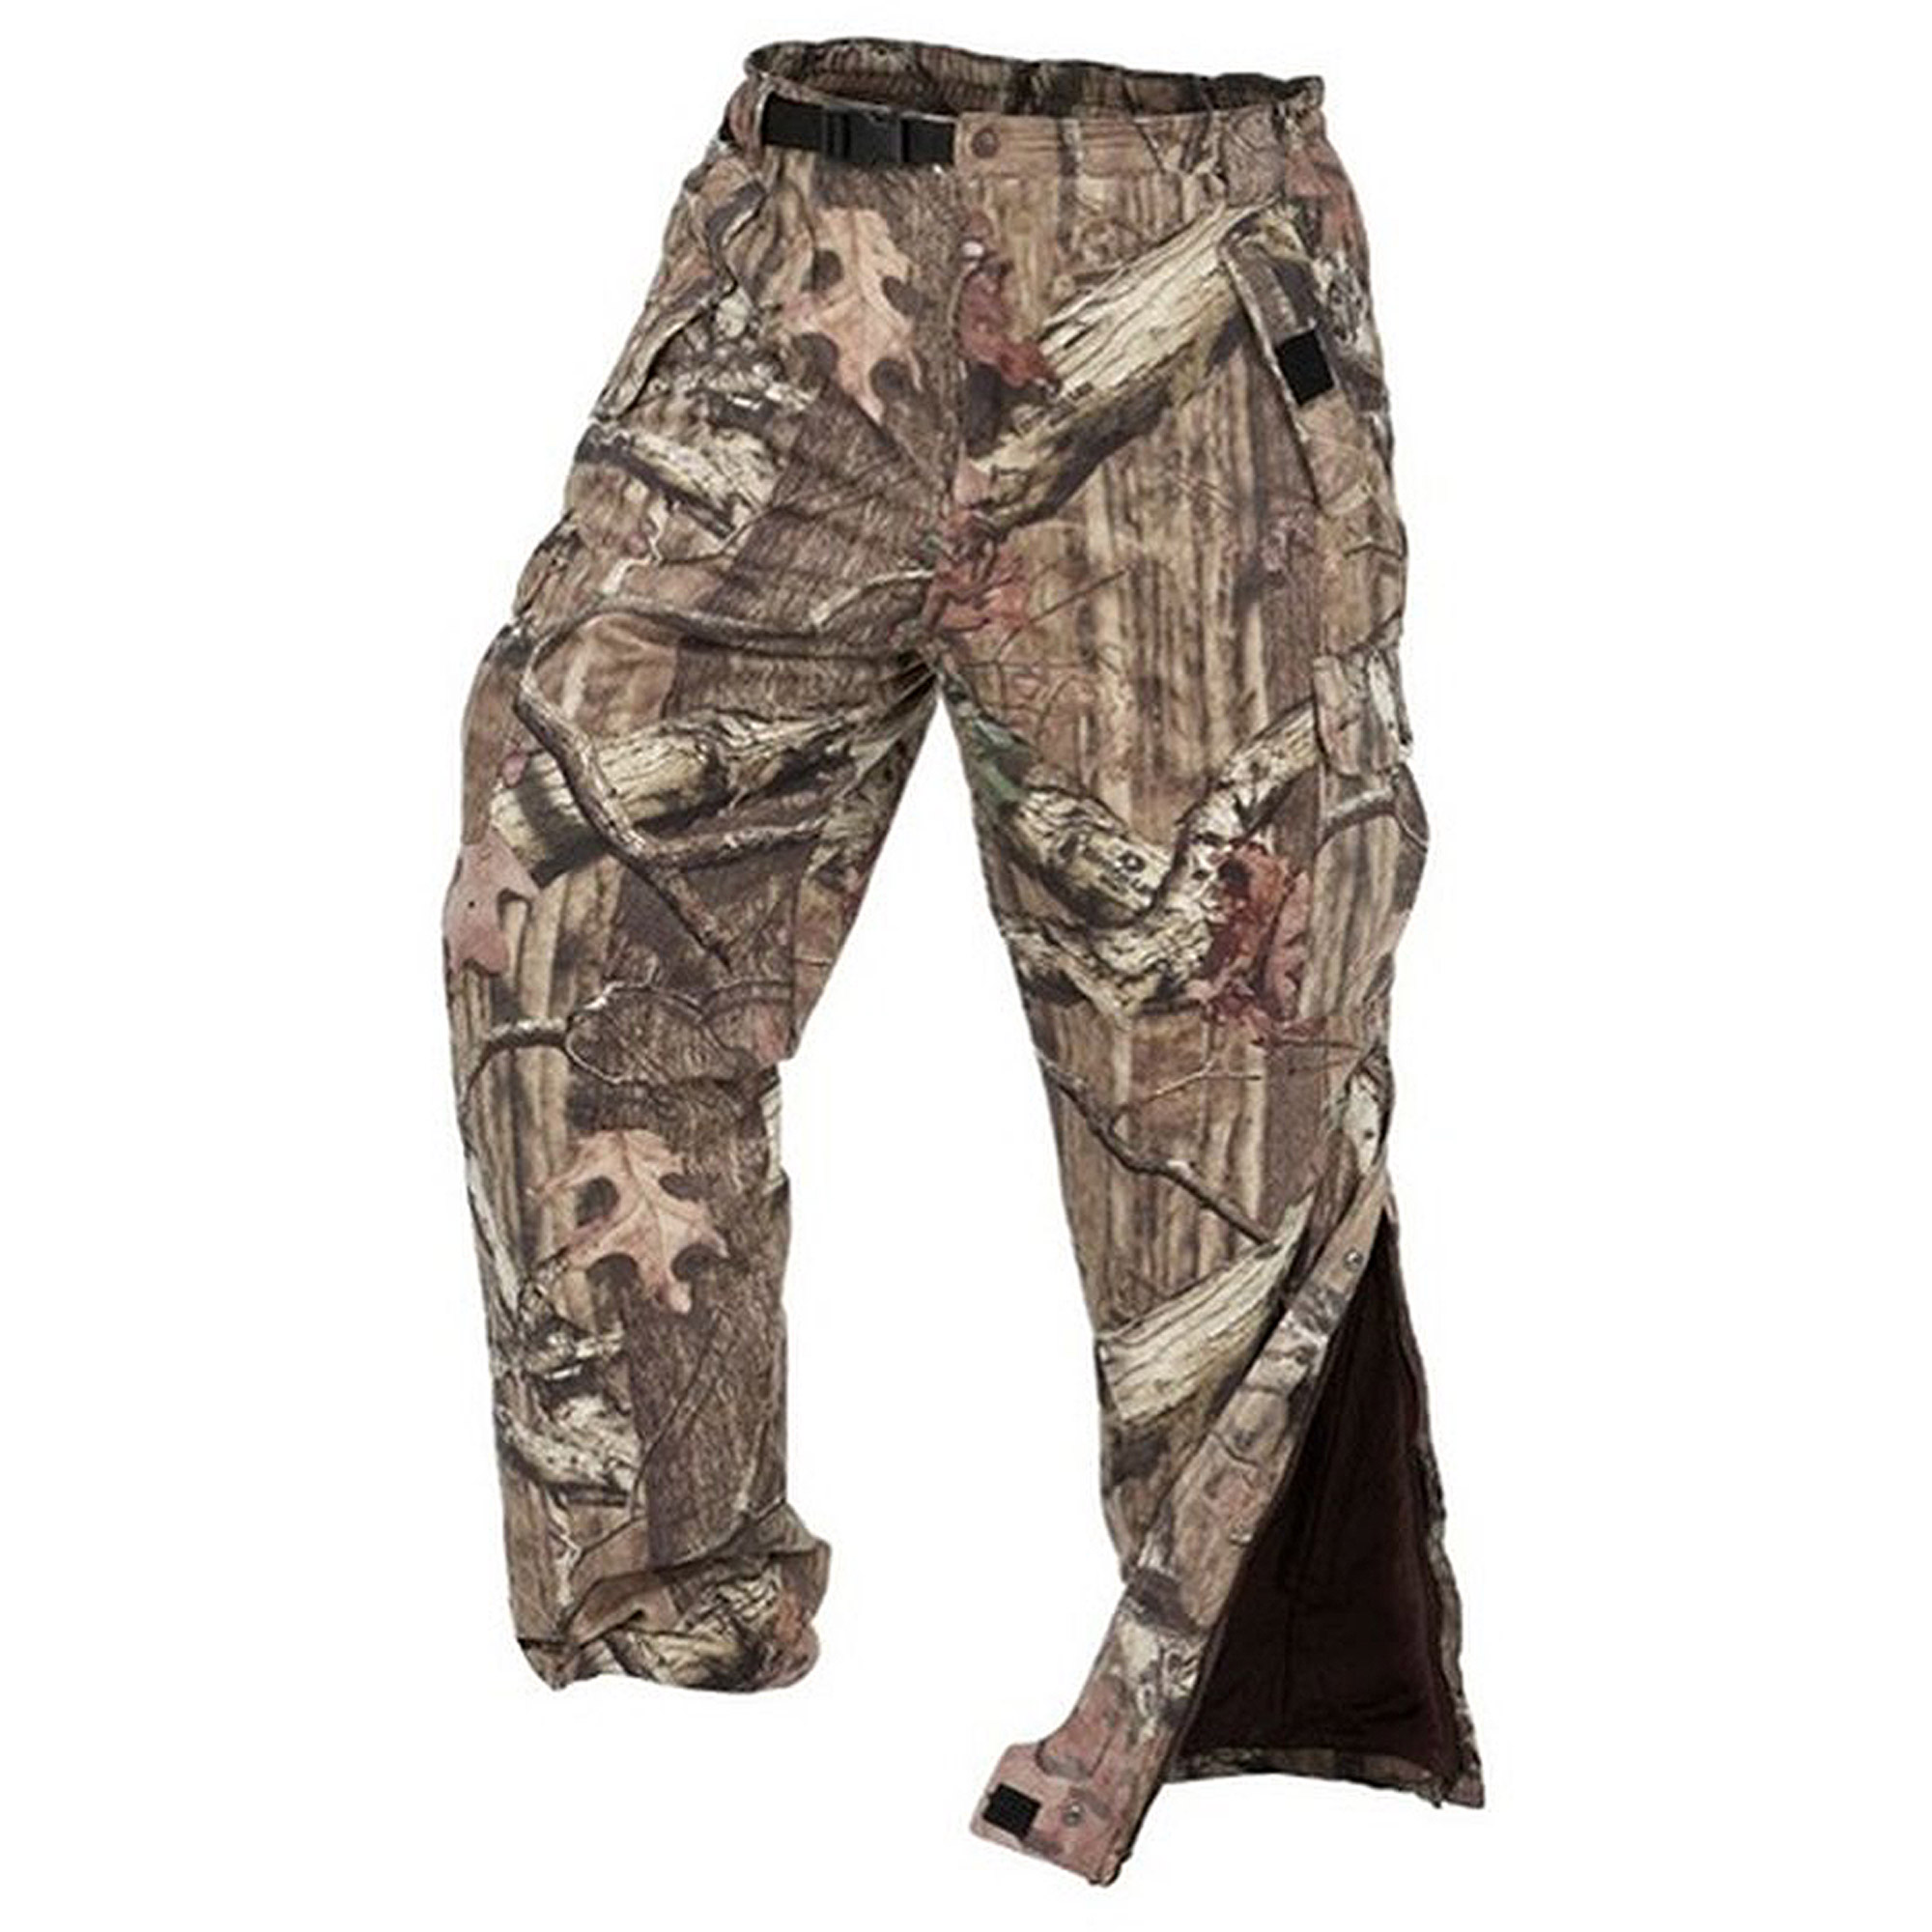 Arcticshield Essentials Pant, RealTree AP Medium